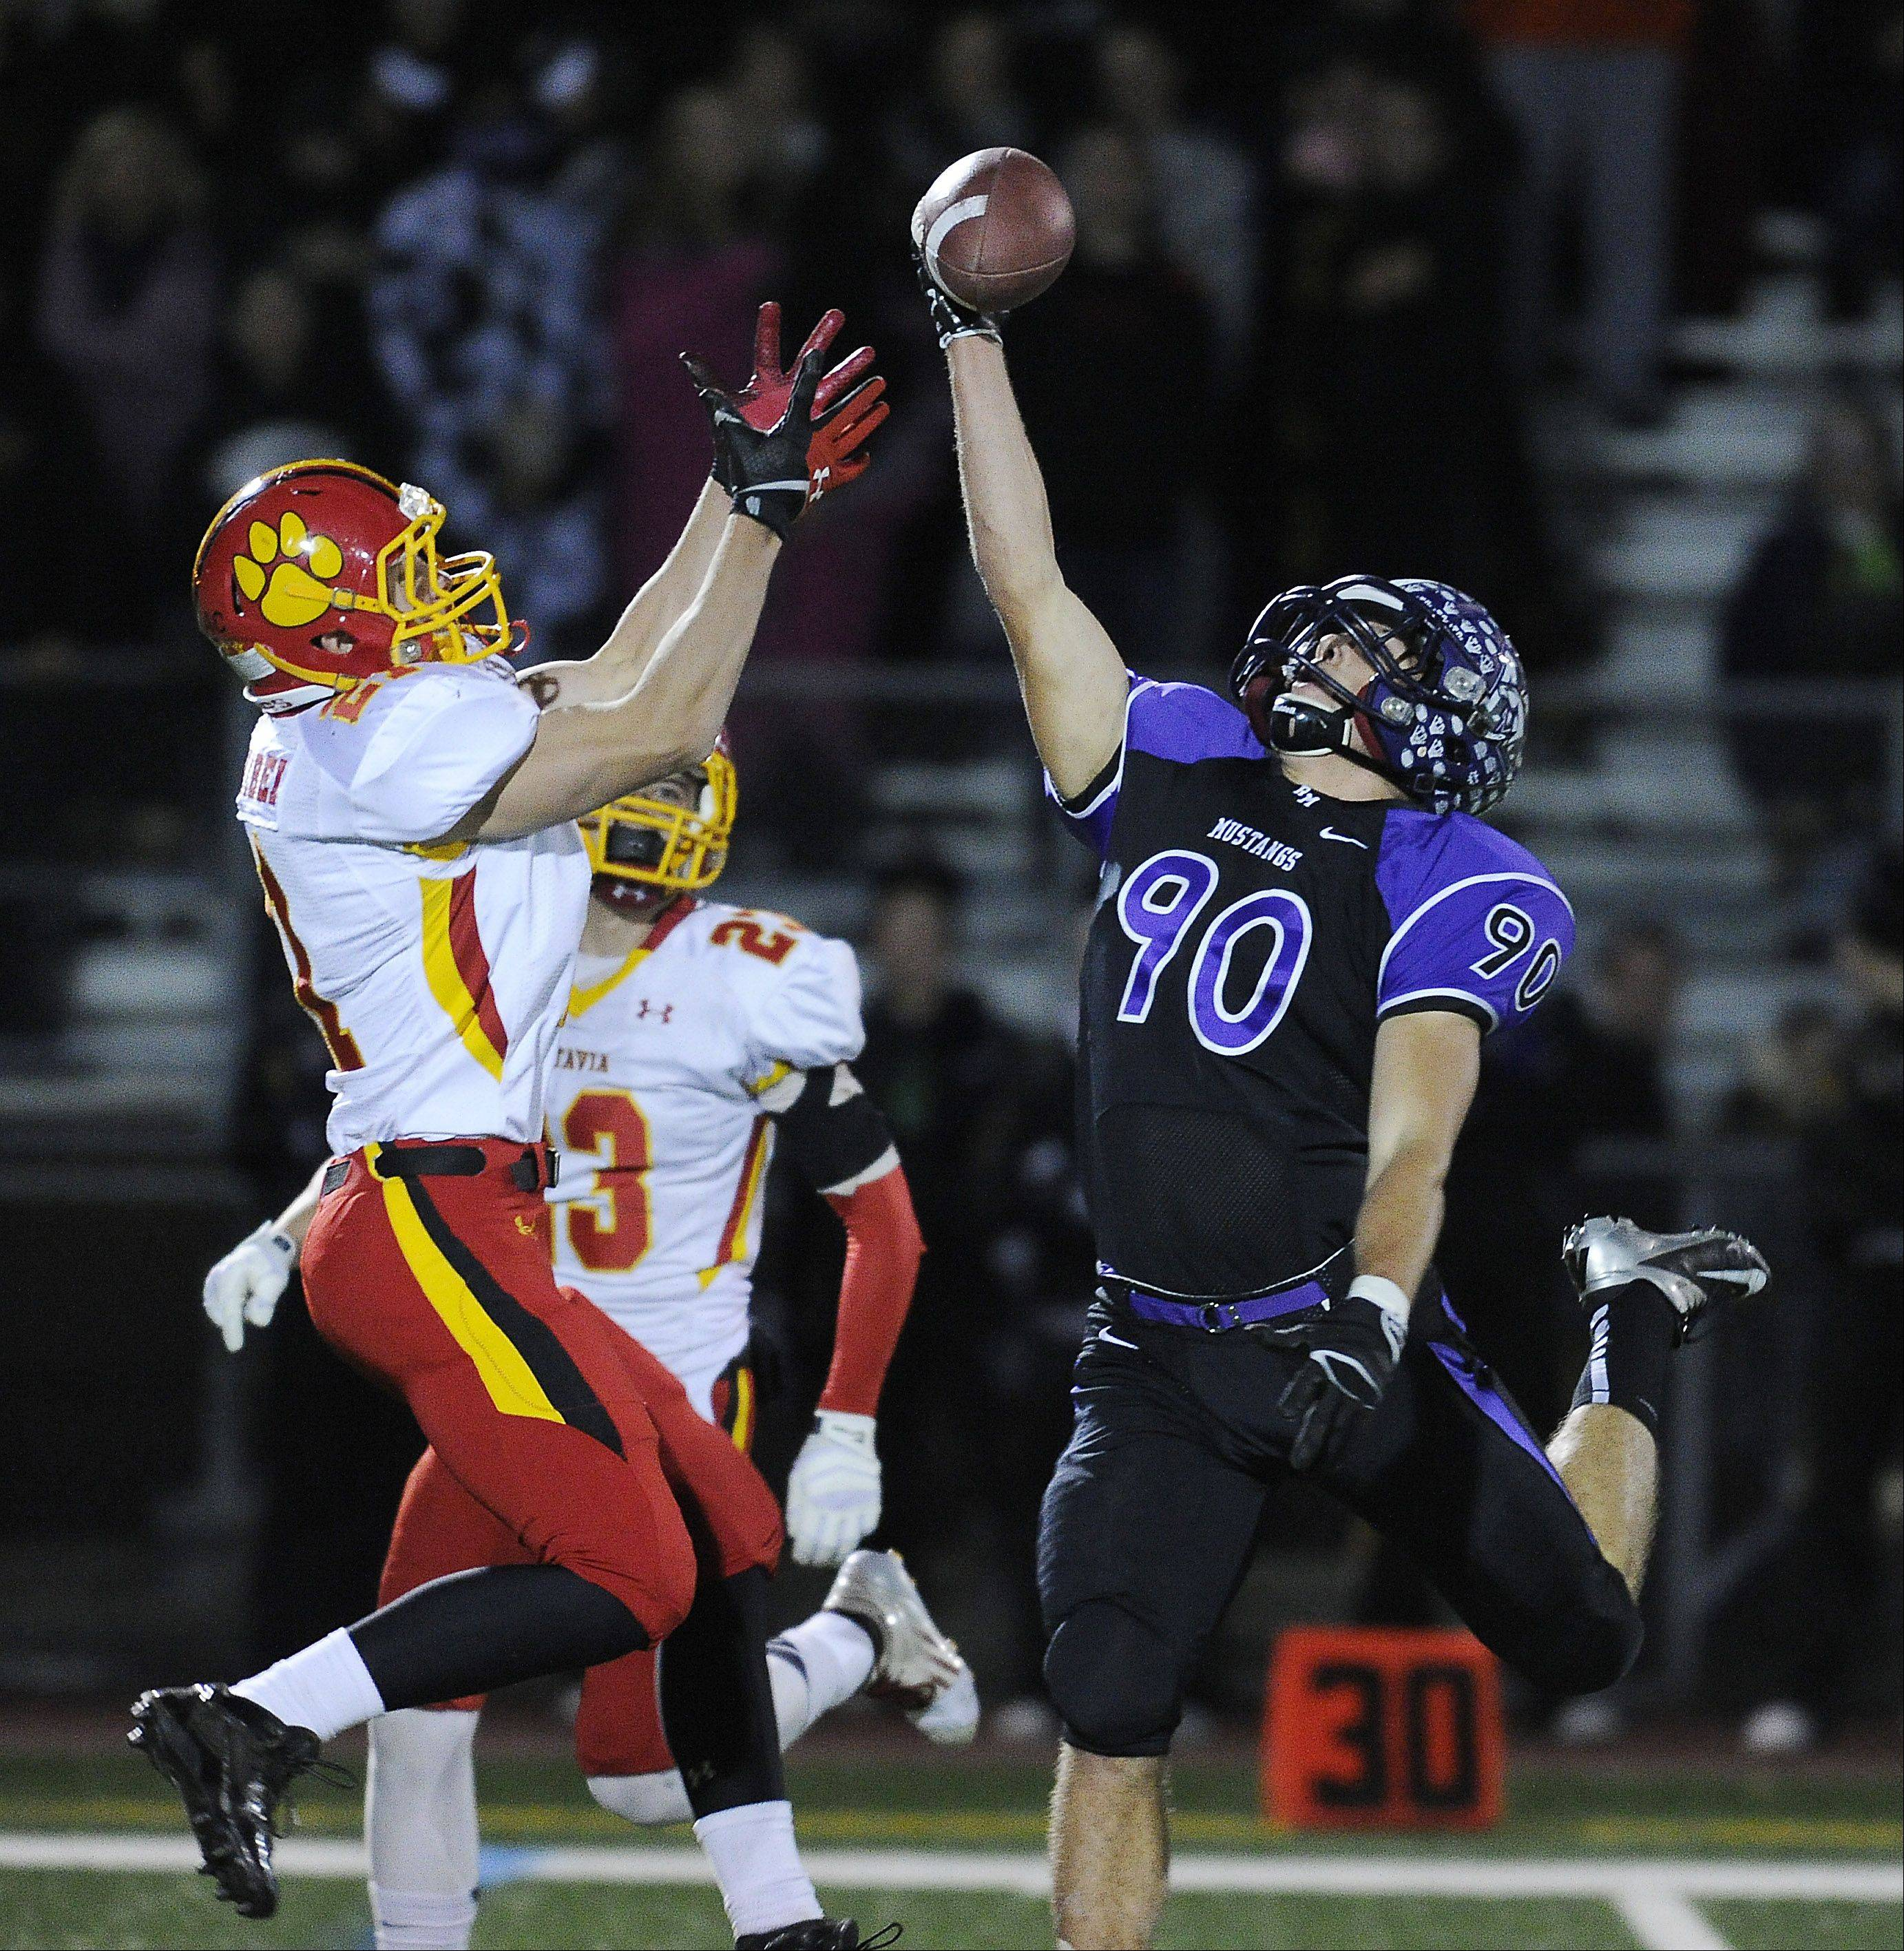 Batavia's Nick Bernabei is unable to stop this one-handed reception that Rolling Meadows' Matt Campbell grabbed for a touchdown in the second quarter of Class 6A playoff action at Rolling Meadows on Saturday.